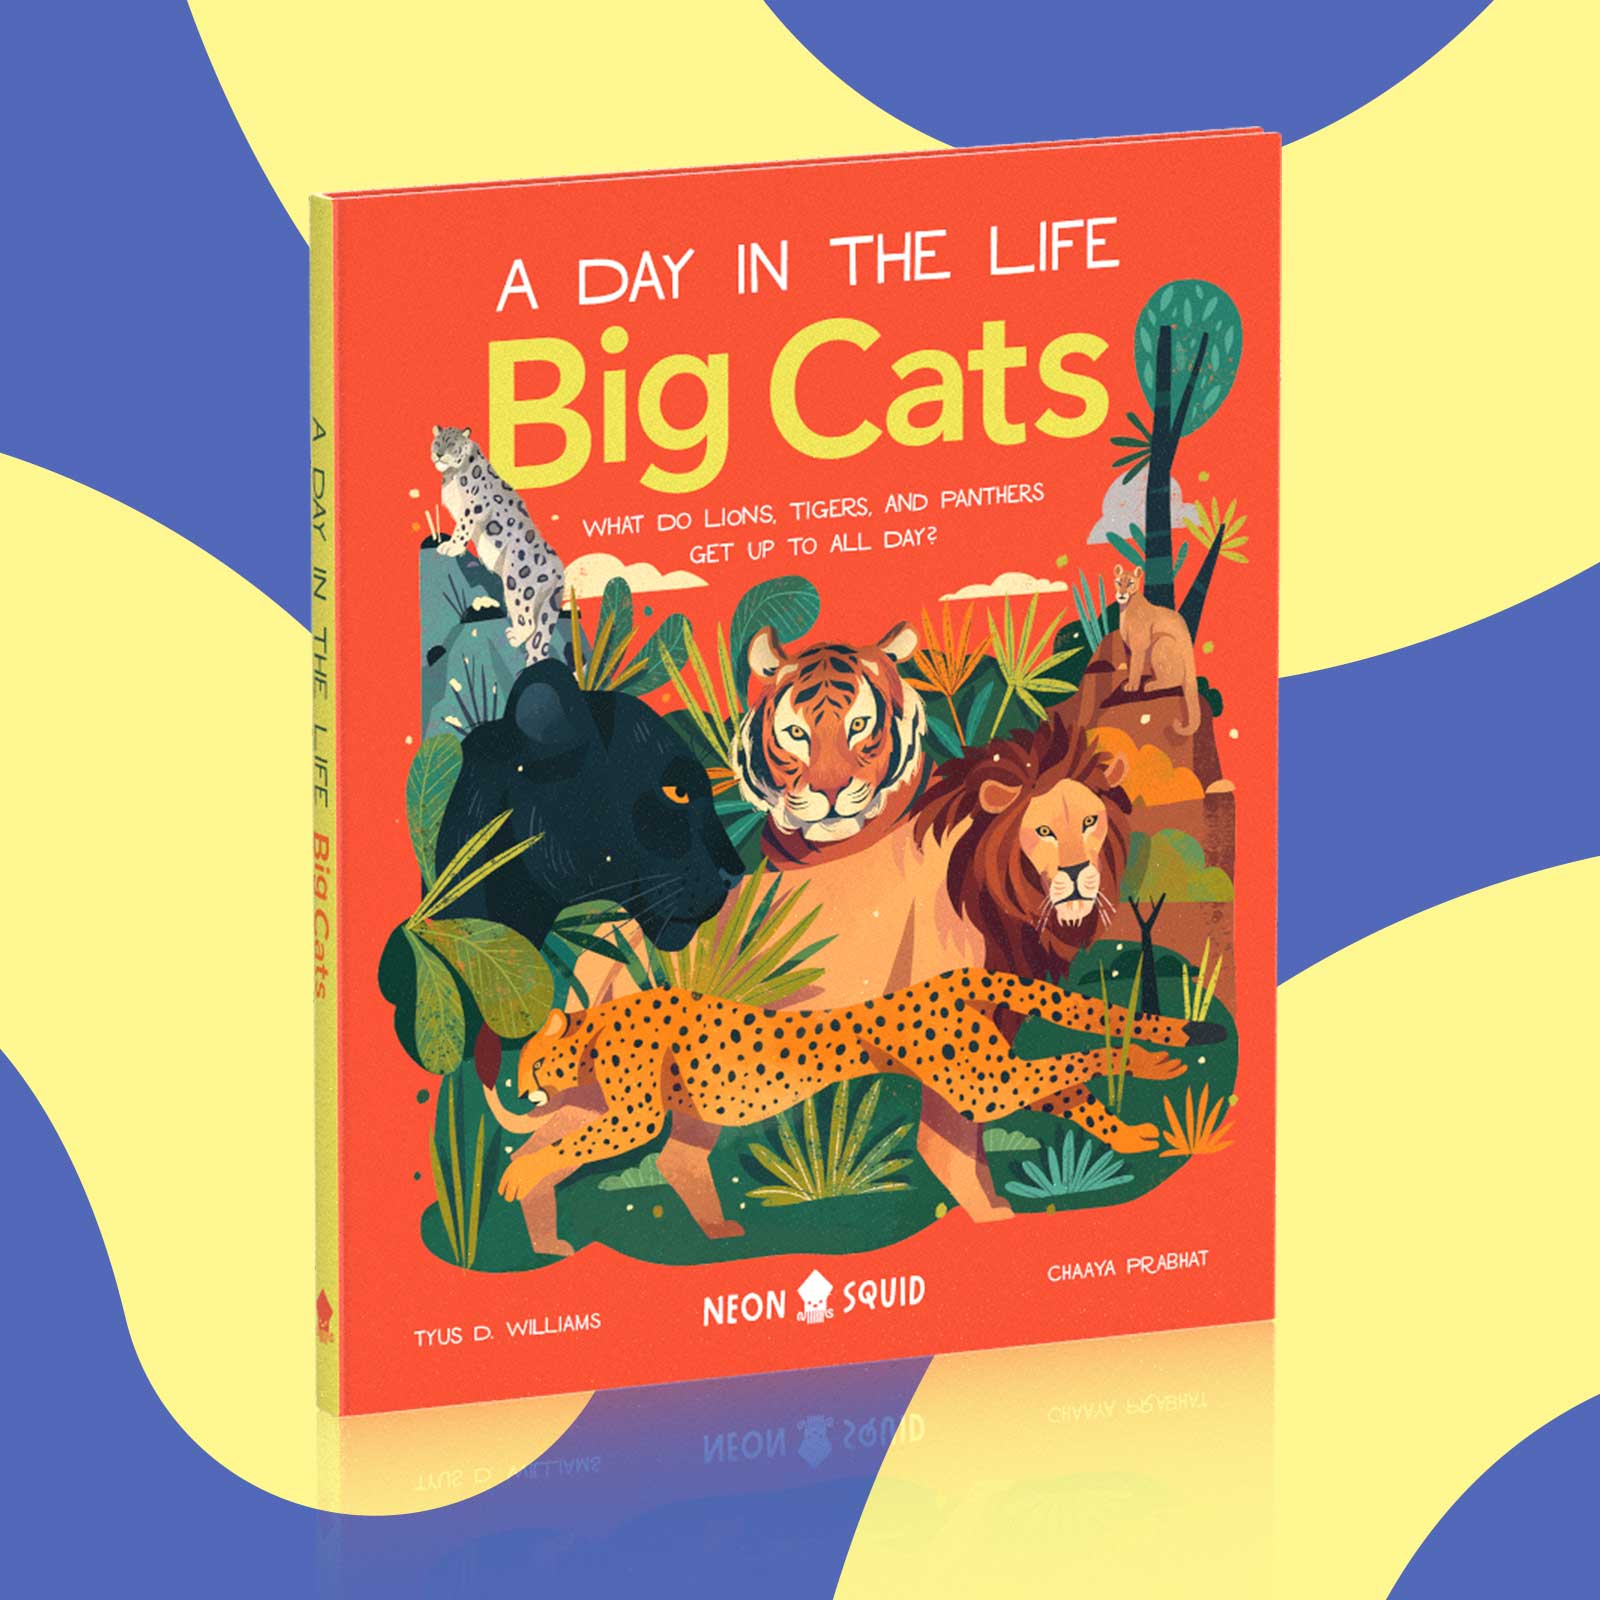 """The book """"A Day in the Life: Big Cats"""", on a red and blue background."""